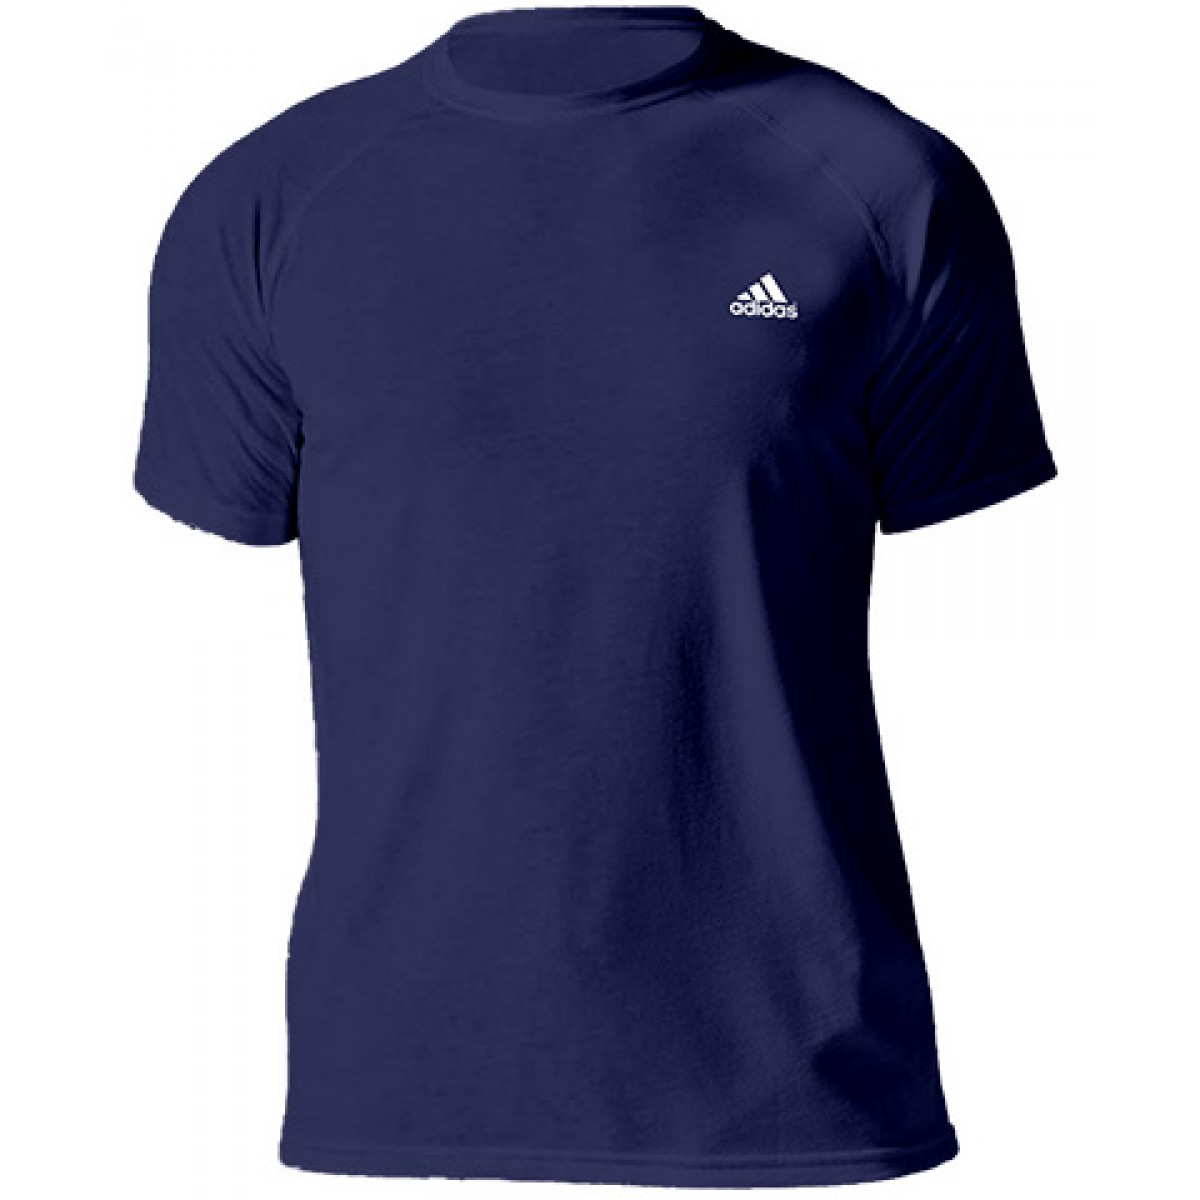 Adidas Embroidered Logo Essential Crew Neck T-shirt